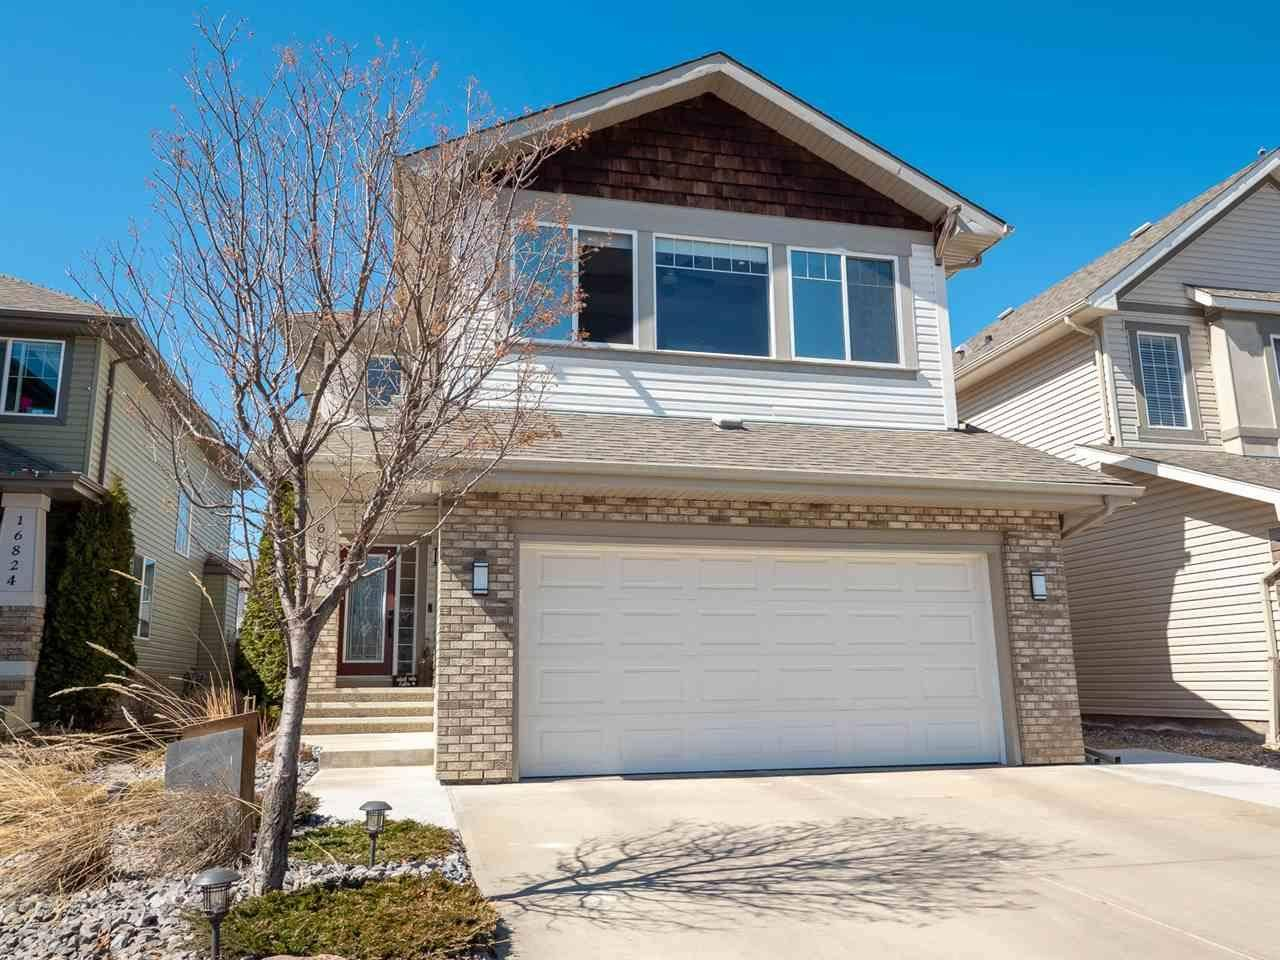 House for sale at 16904 57 St Nw Edmonton Alberta - MLS: E4194692